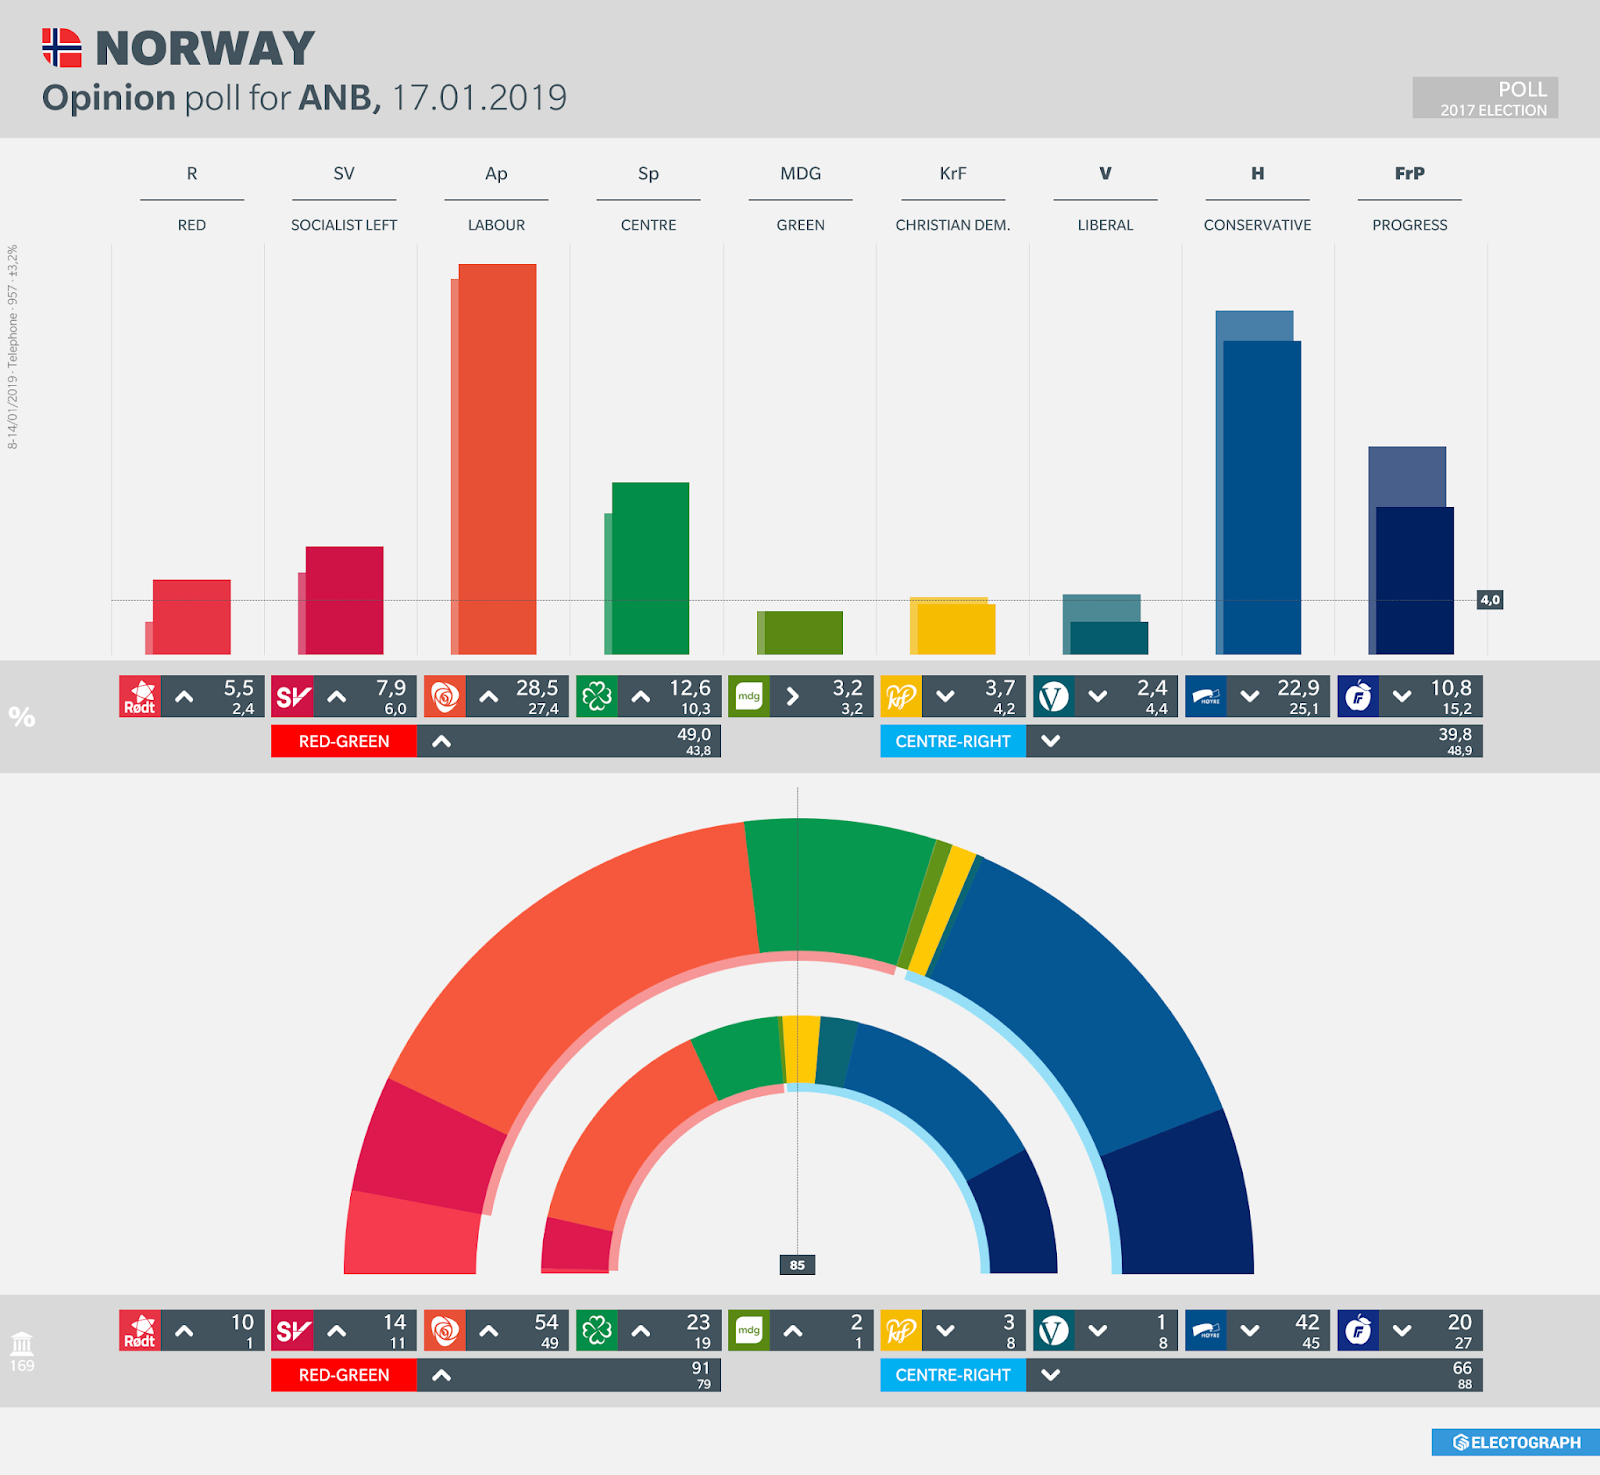 NORWAY: Opinion poll chart for ANB, 17 January 2019